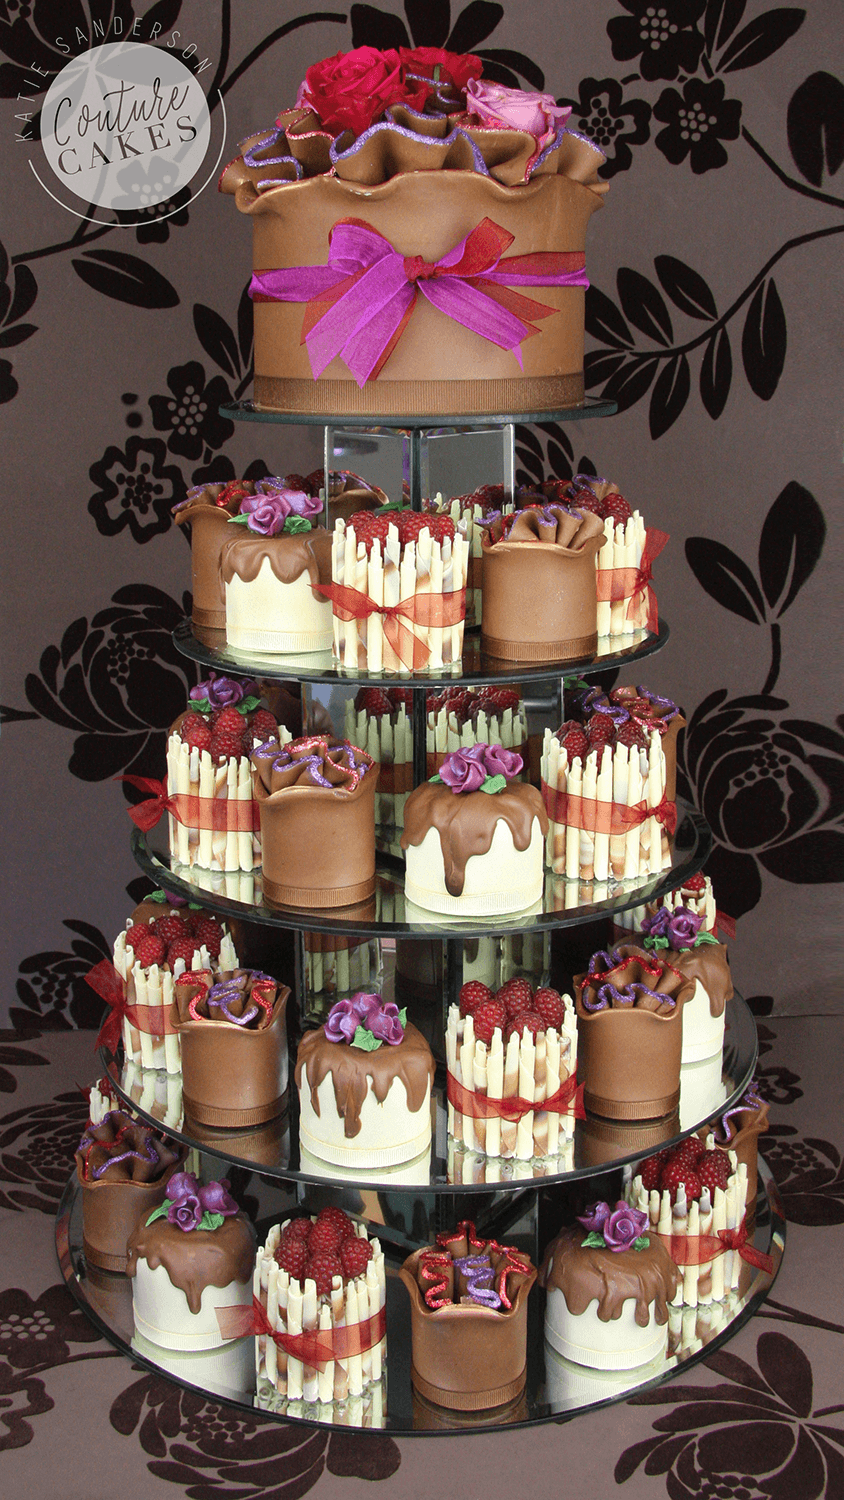 Serves 46 mini cakes & 20 portion top tier, Price as pictured £577